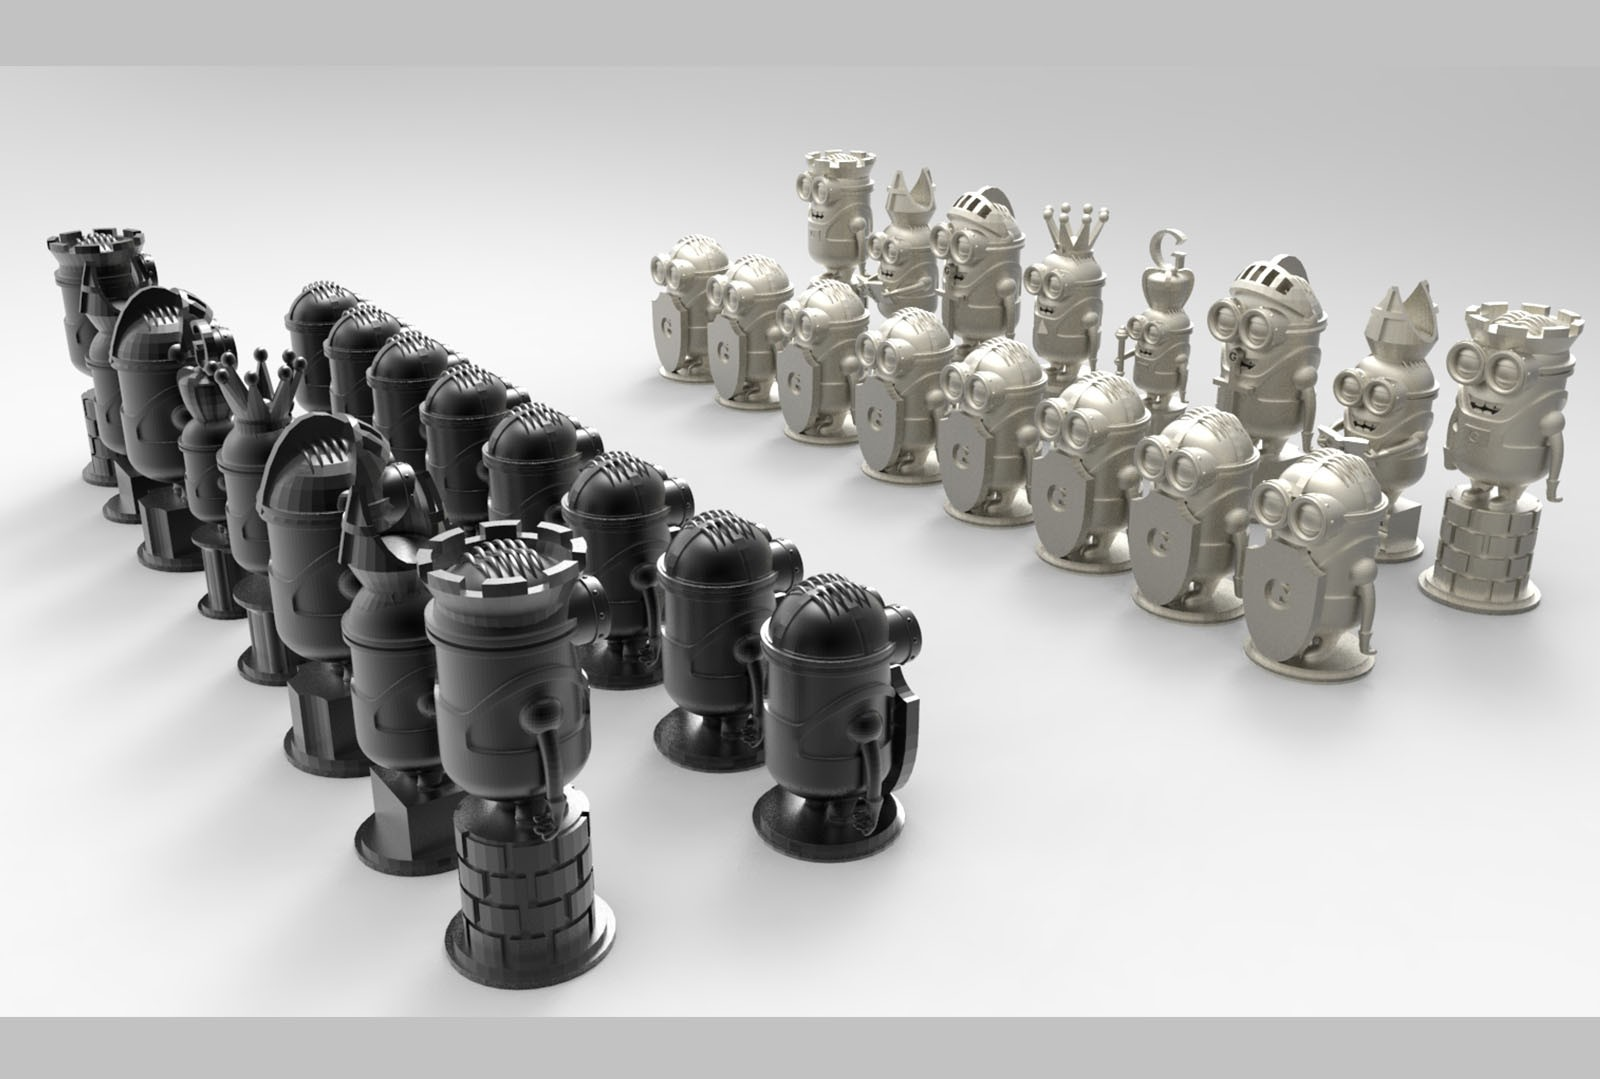 CNC N009 (Minion Chess) 3D STL Model